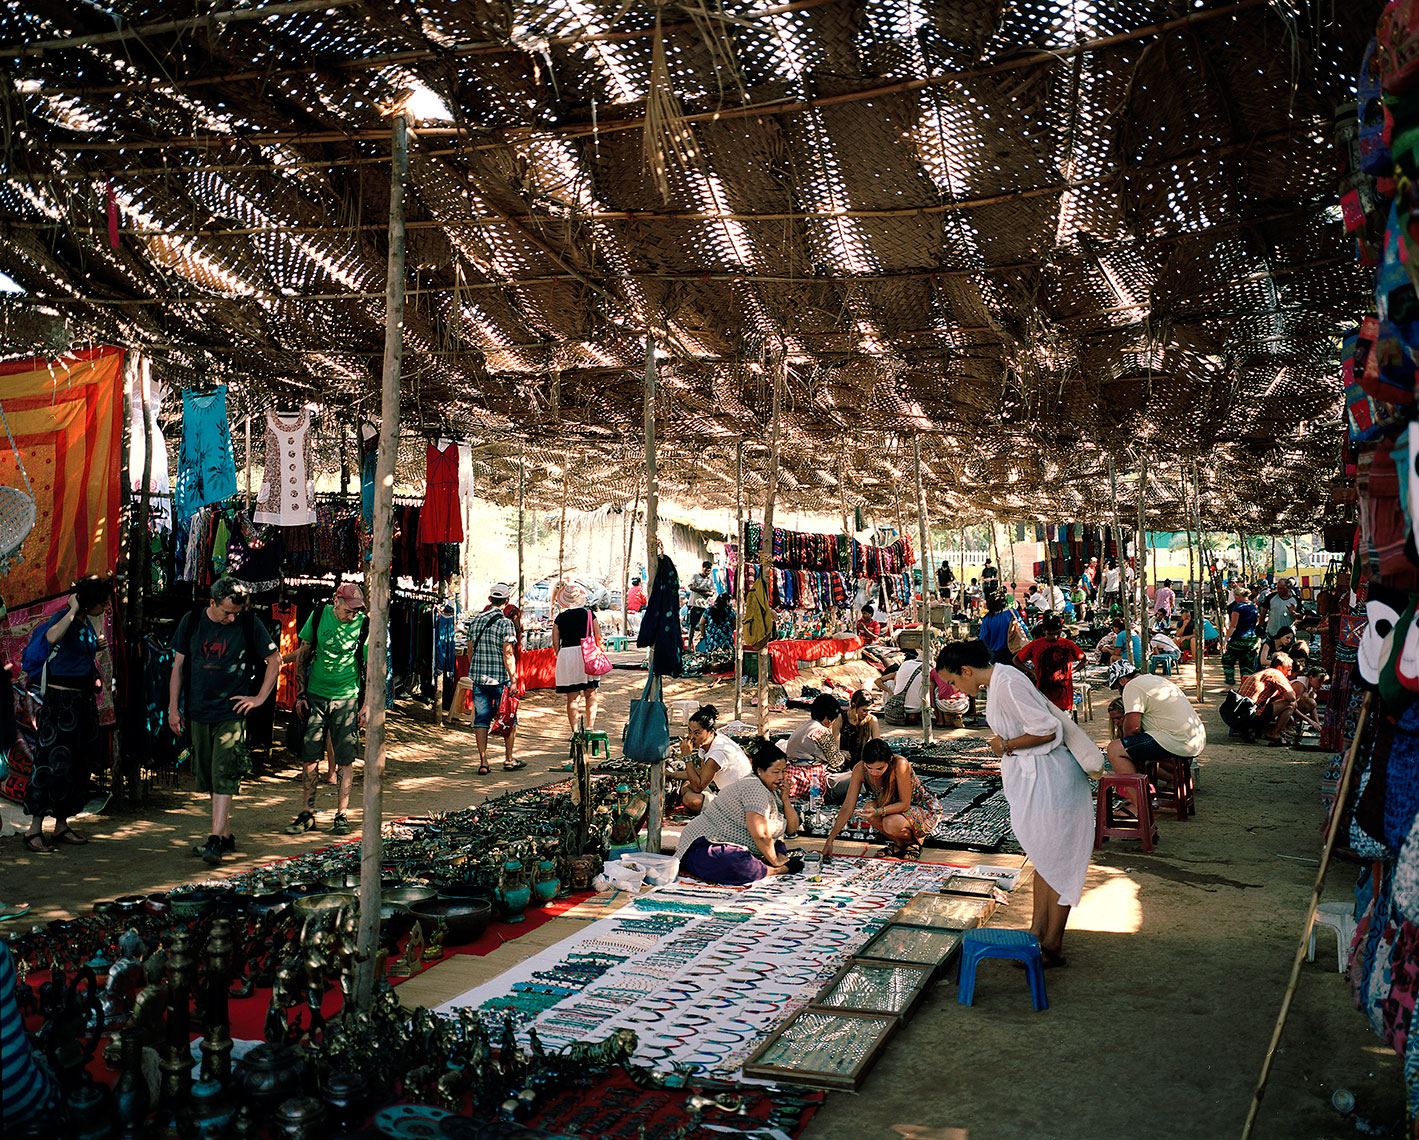 Market in Goa